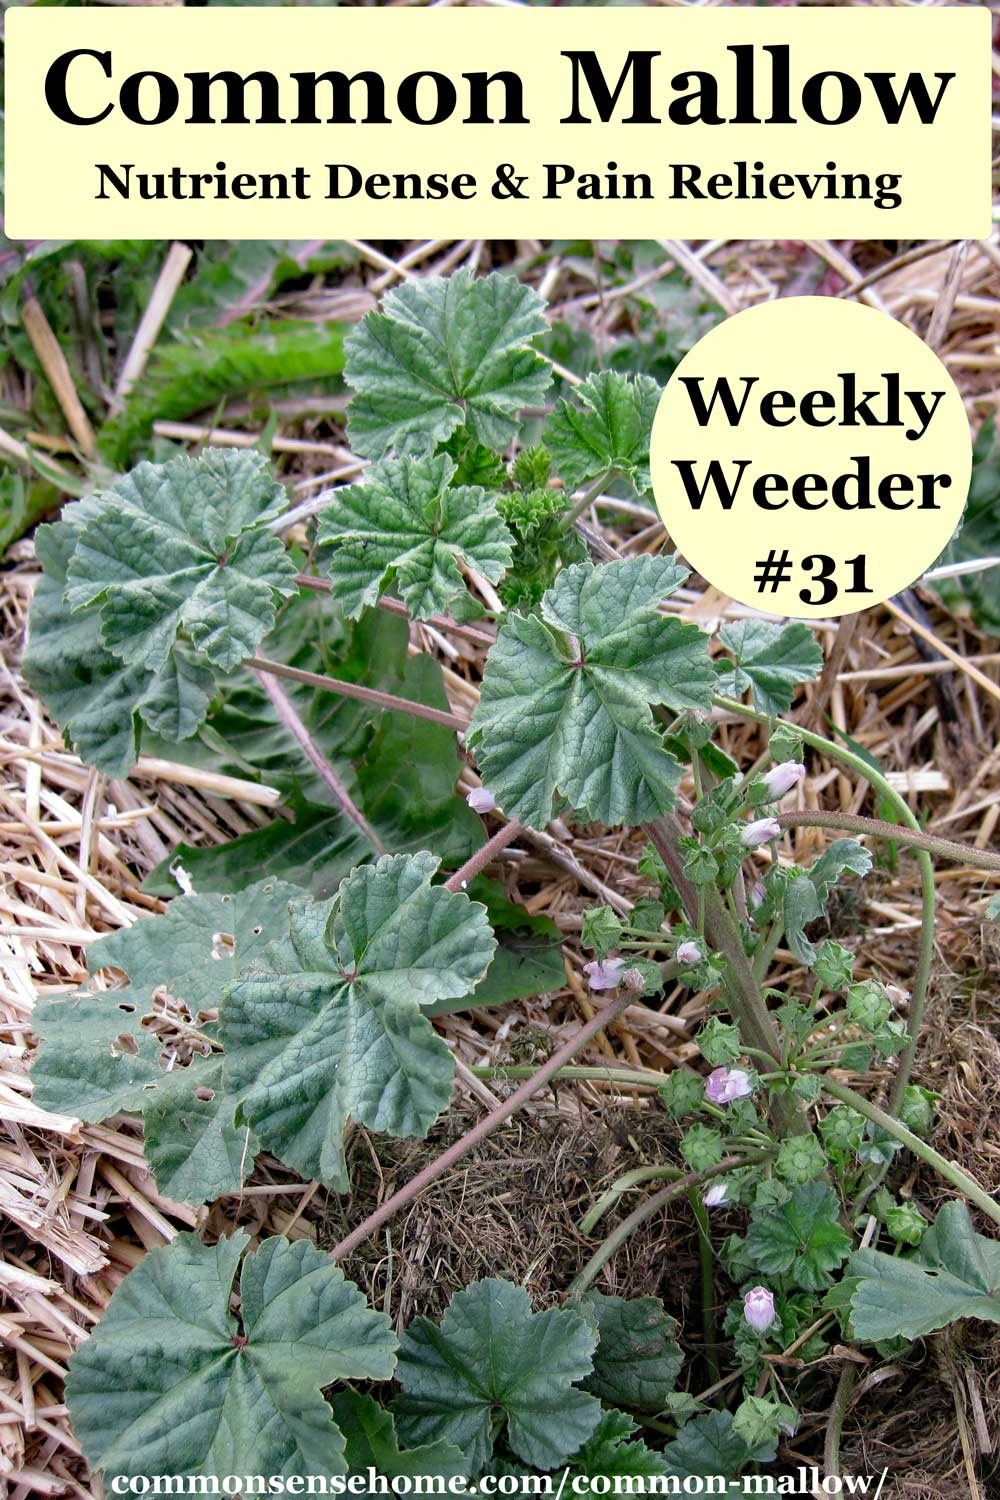 Common mallow - Weekly Weeder #31